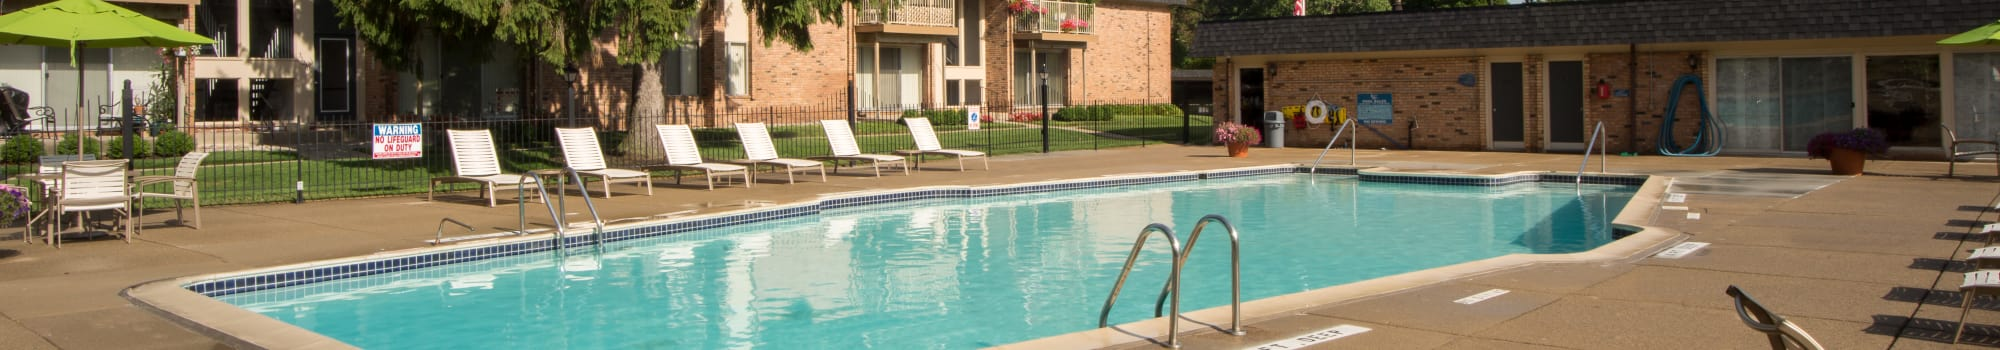 Careers at Kensington Manor Apartments in Farmington, Michigan